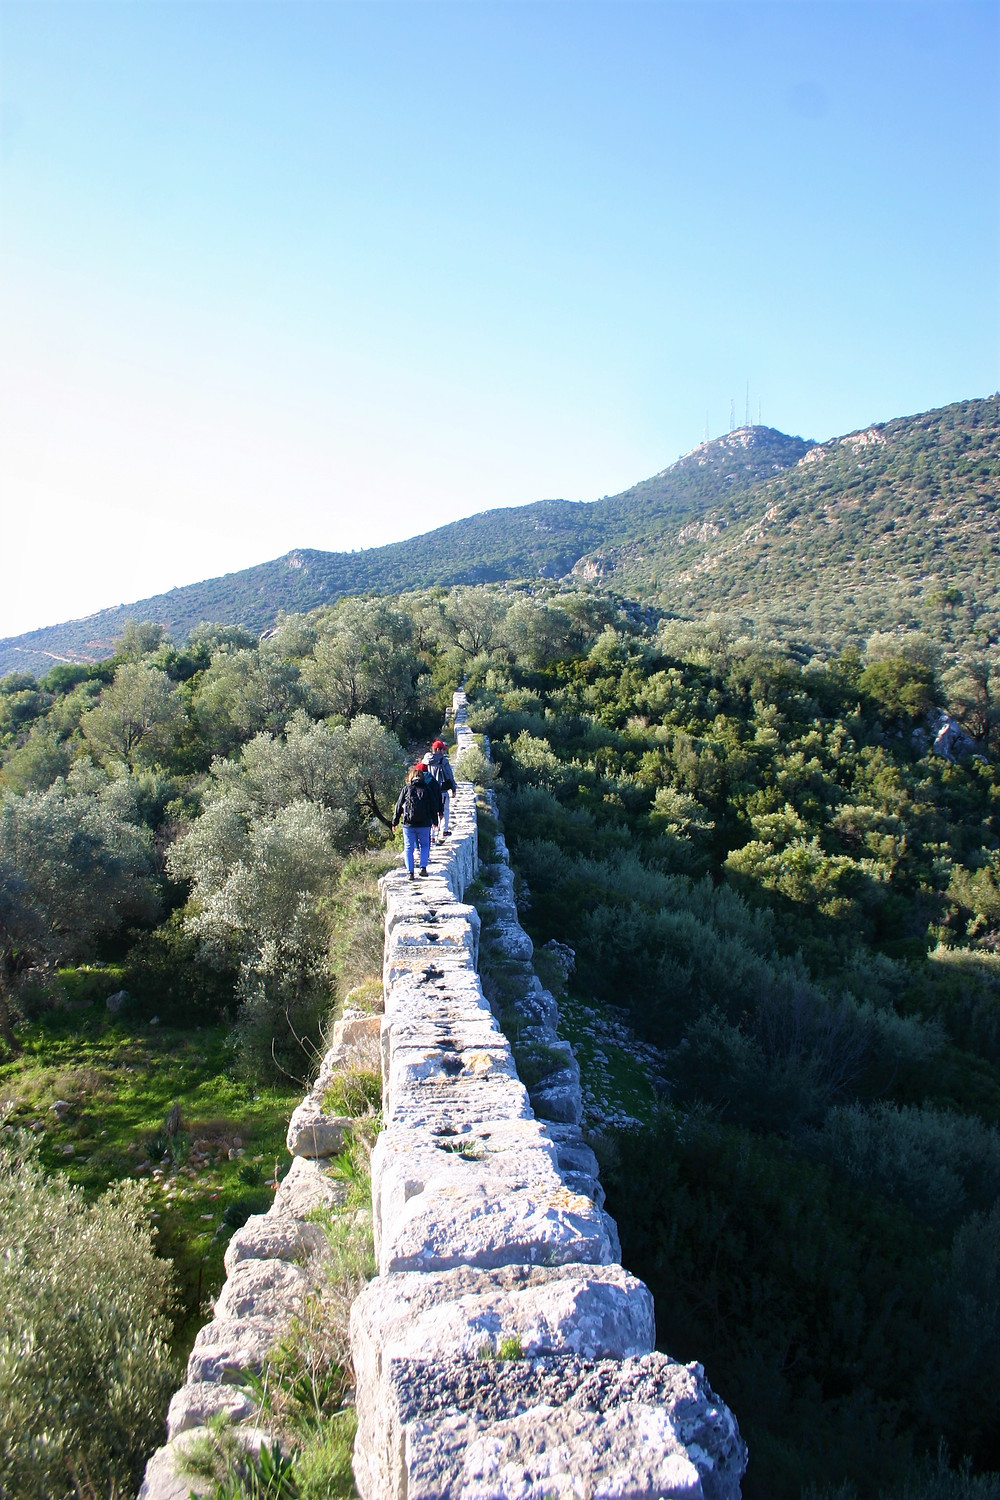 Trekking on the Delikkemer Aqueduct